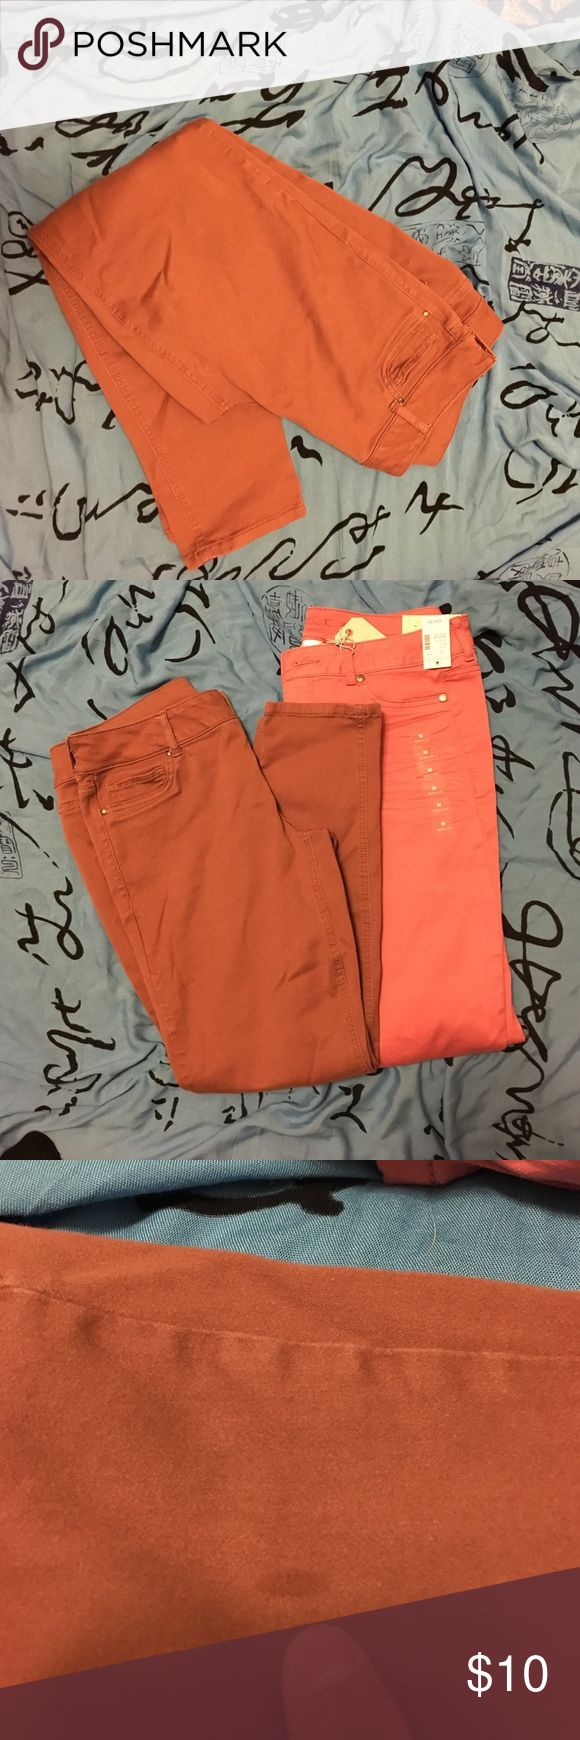 """Maurice's jeggings Bought these thinking they were pink based on stock photos. Much more of a pink-tinged brown or stone color. True pink pair shown for comparison. 17"""" waist 27"""" inseam (""""short"""" fit) with stretch. Small stain on pant leg, condition may improve with cleaning. (I will try a few things and update later). Otherwise in great preloved condition. False front pockets, true back pockets, zippered/button closure, skinny fit. Maurices Pants Skinny"""